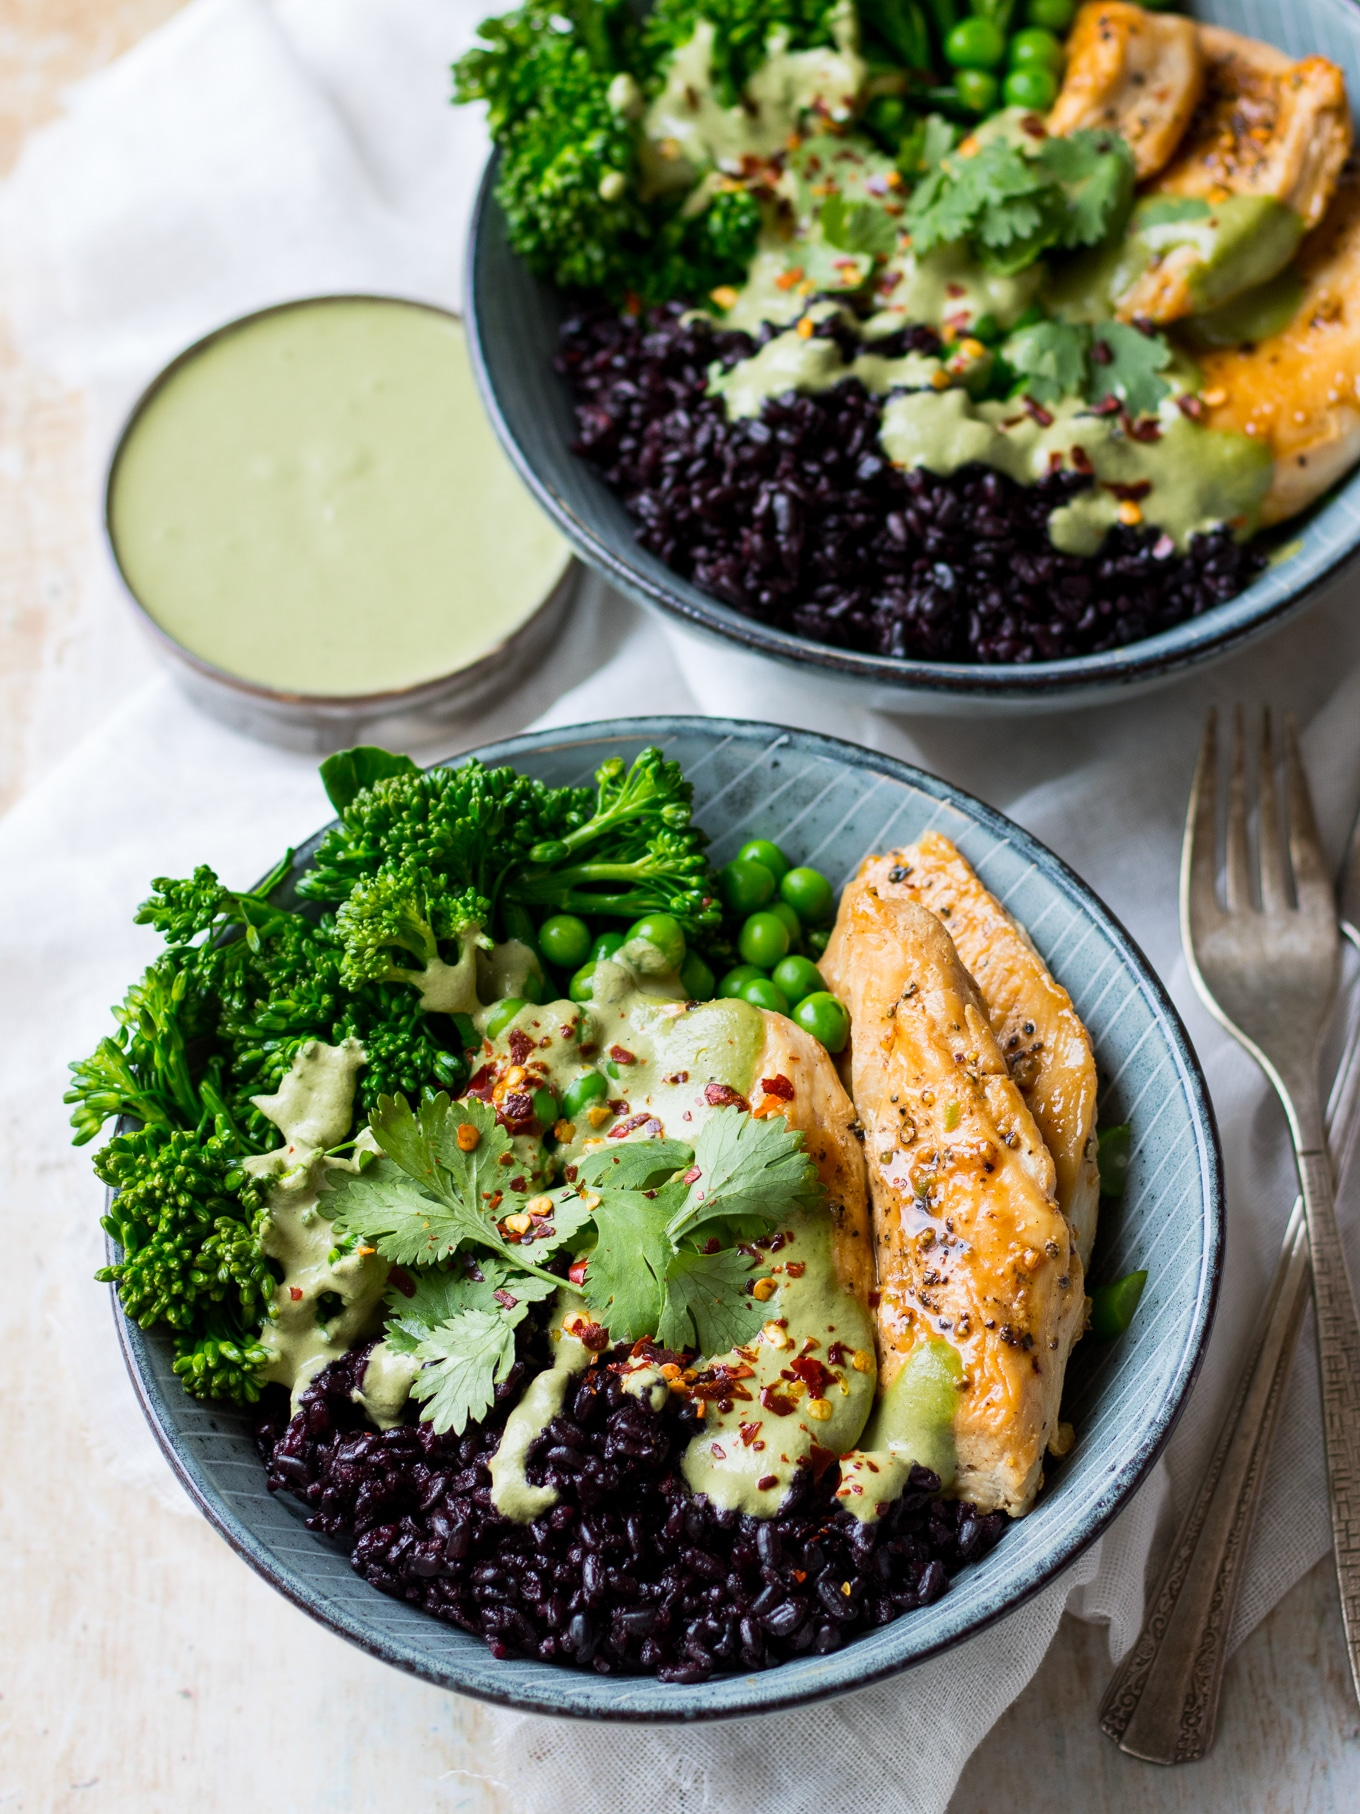 Blue bowls, chicken black rice bowls, layered with black rice, marinated chicken, peas, broccolini, green cashew herb sauce